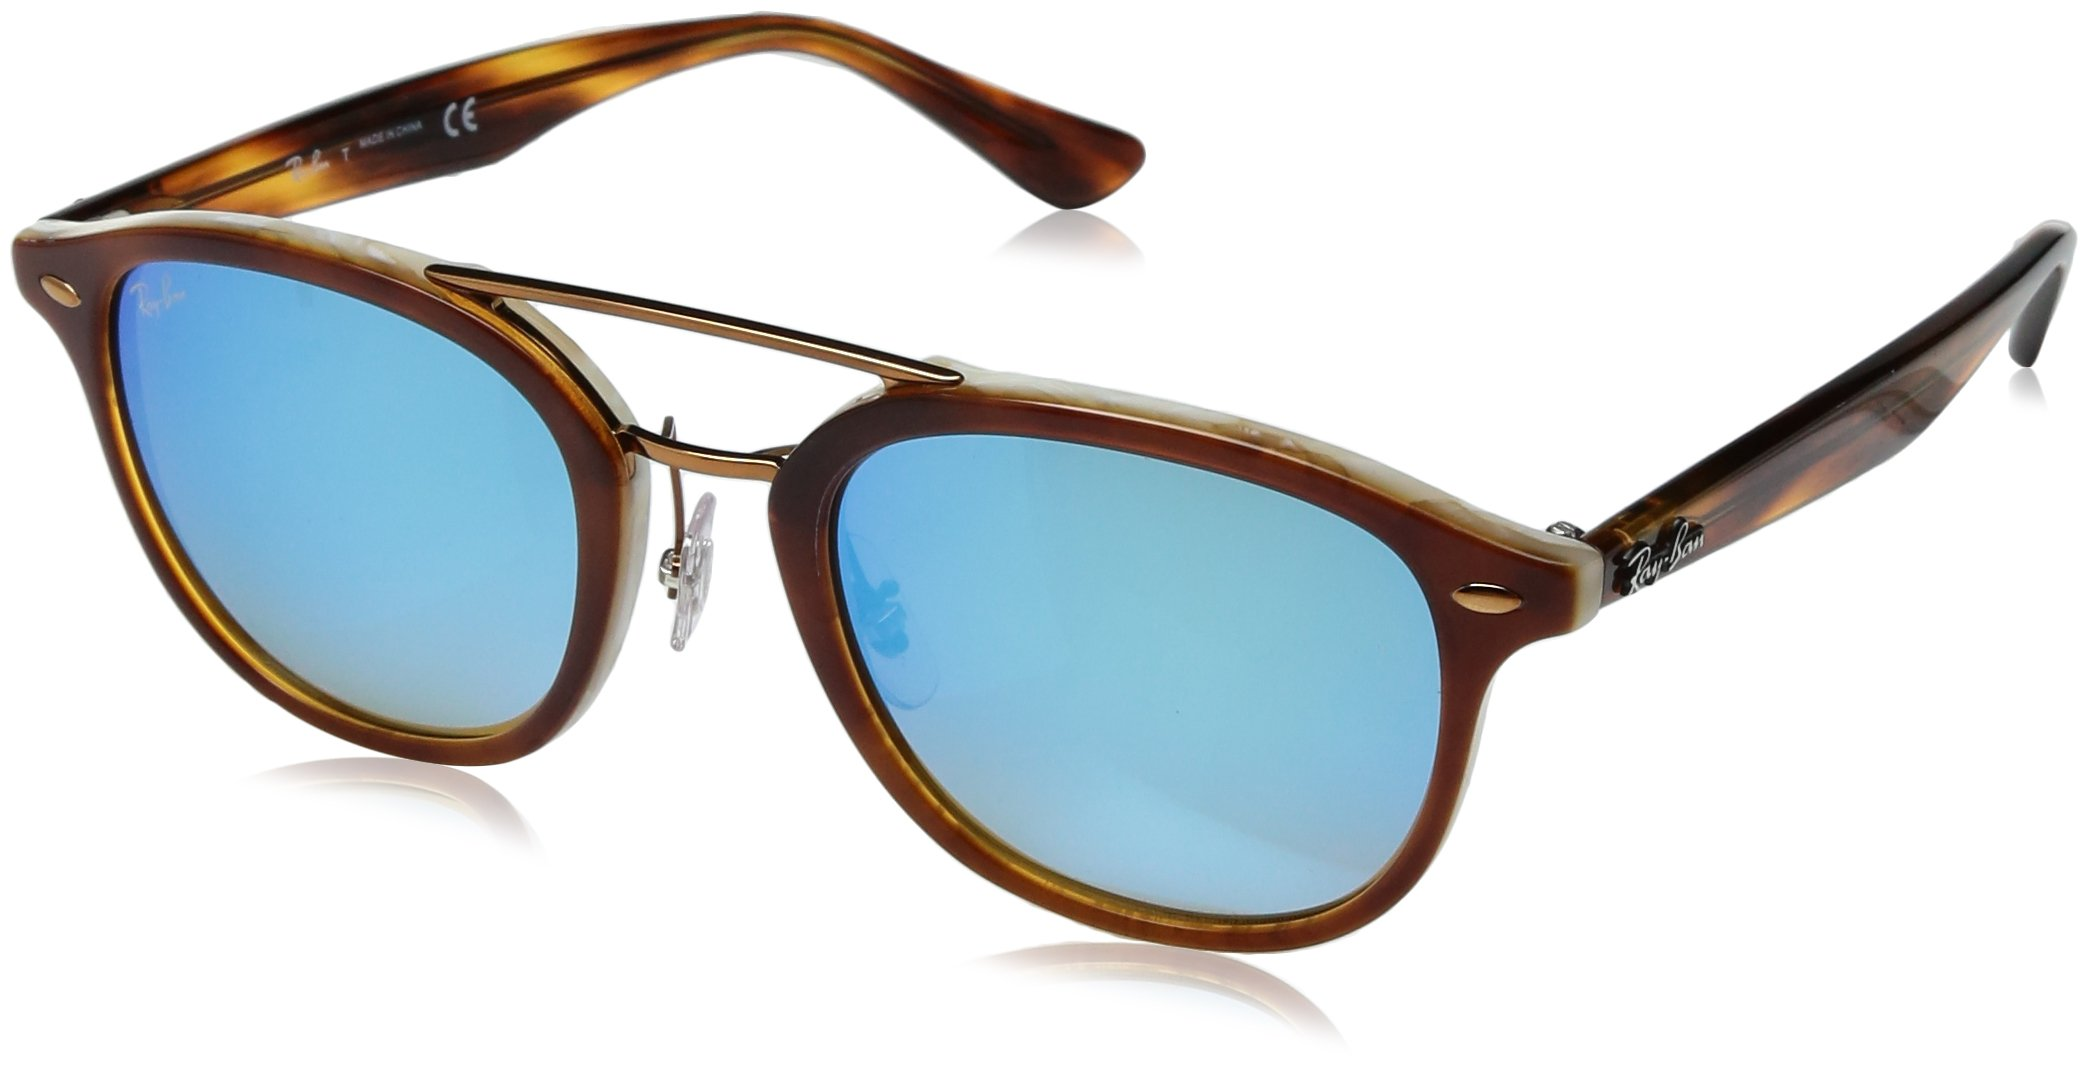 Ray-Ban Acetate Unisex Non-Polarized Iridium Square Sunglasses, Top Havana Brown/Honey, 53 mm